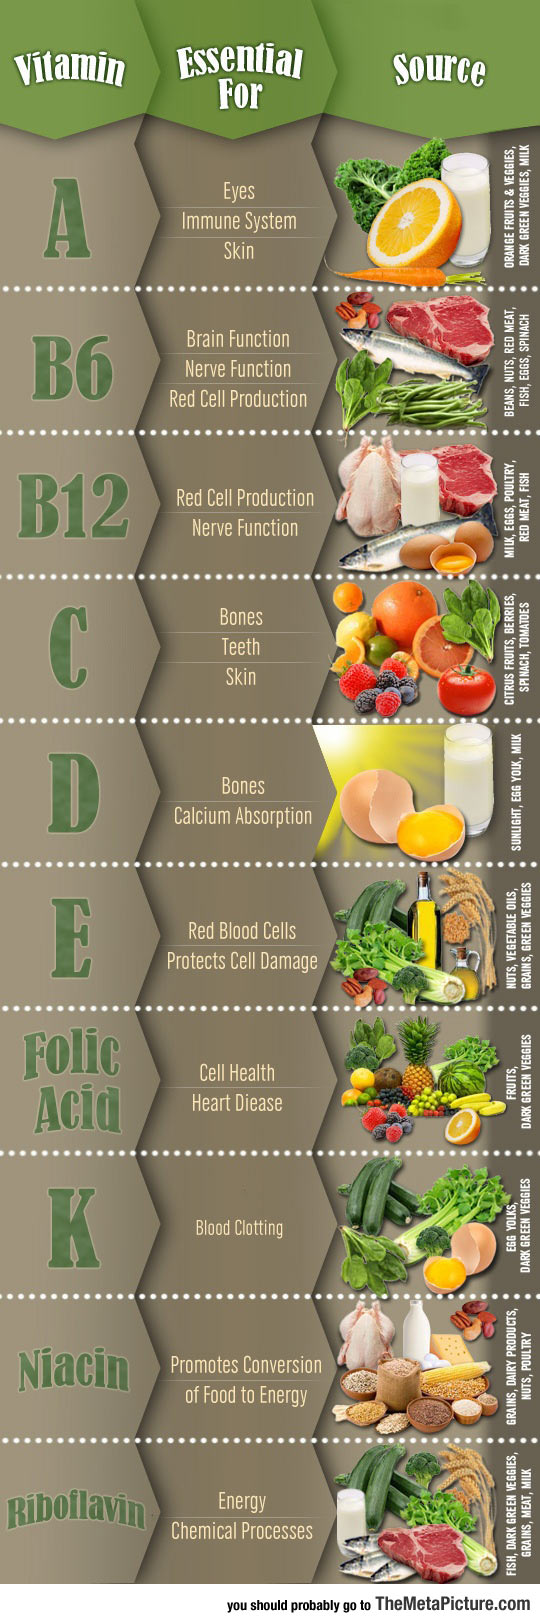 What Each Vitamin Is Good For